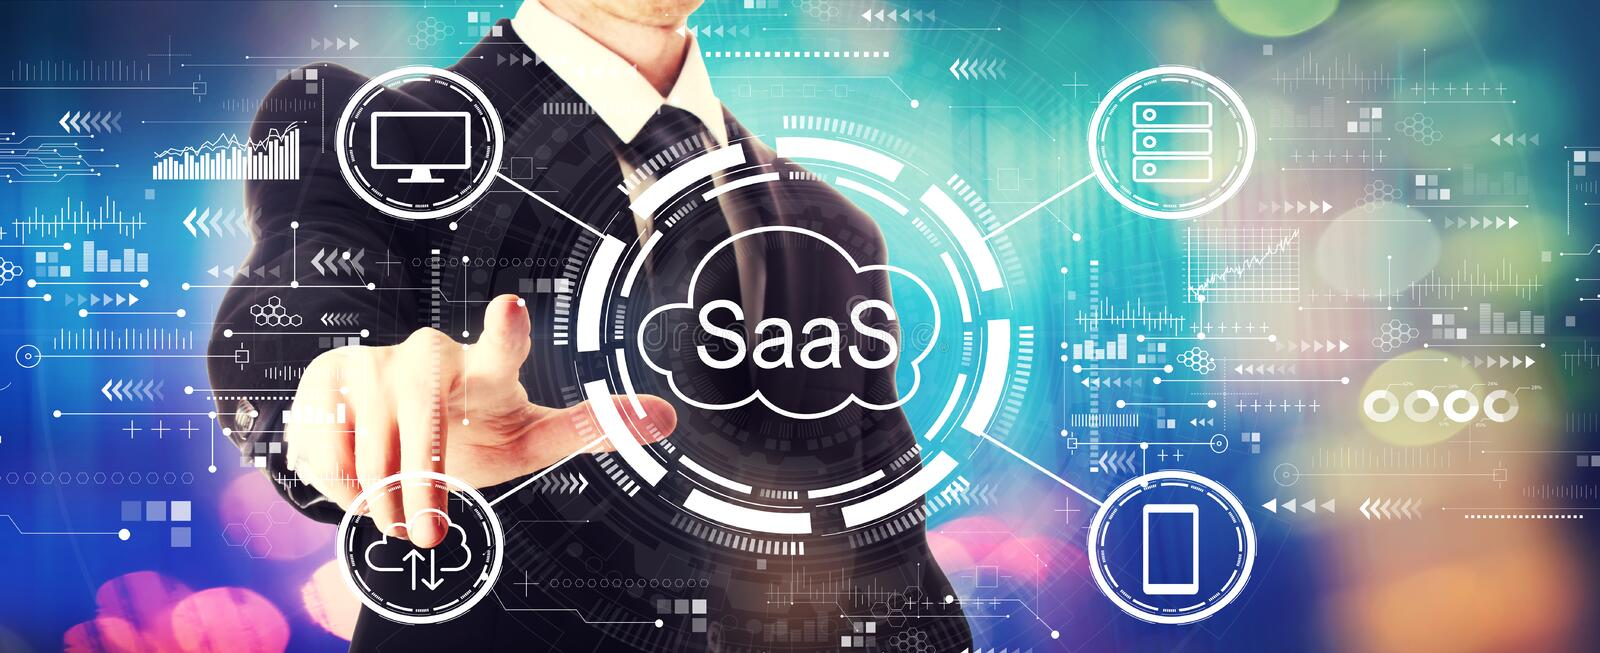 SaaS - software as a service concept with a businessman stock photo